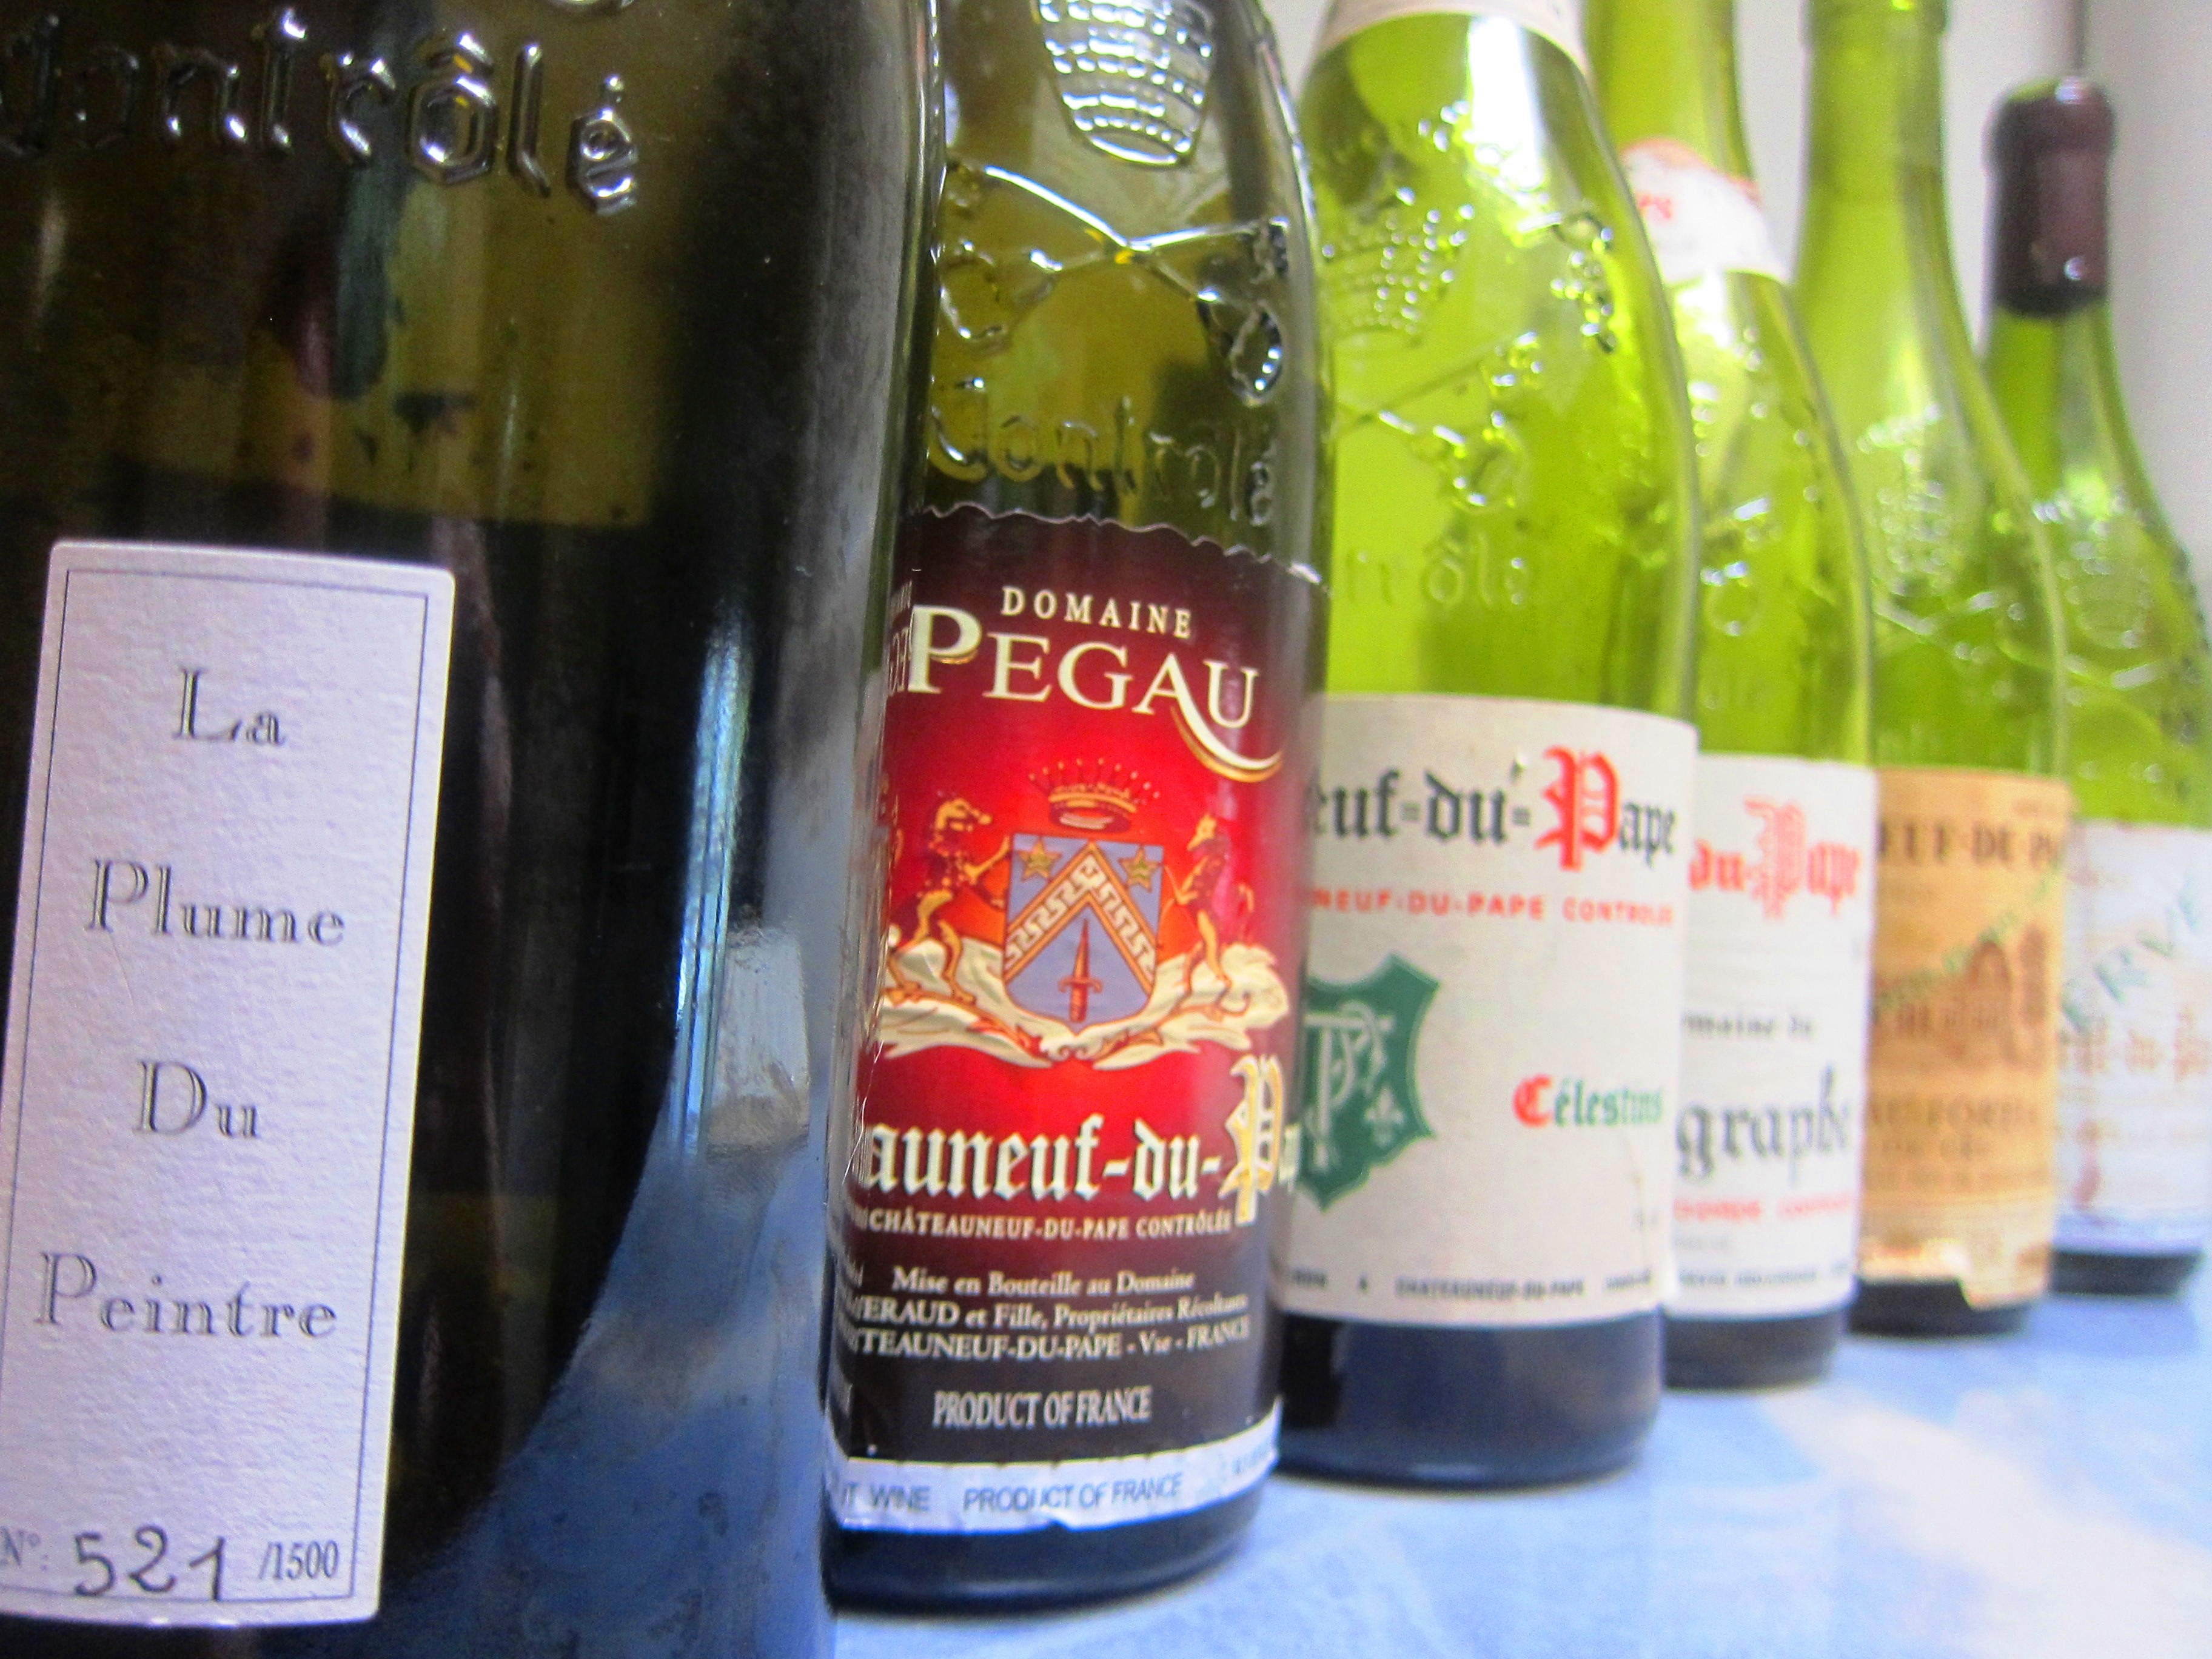 Chateauneuf du Pape wines